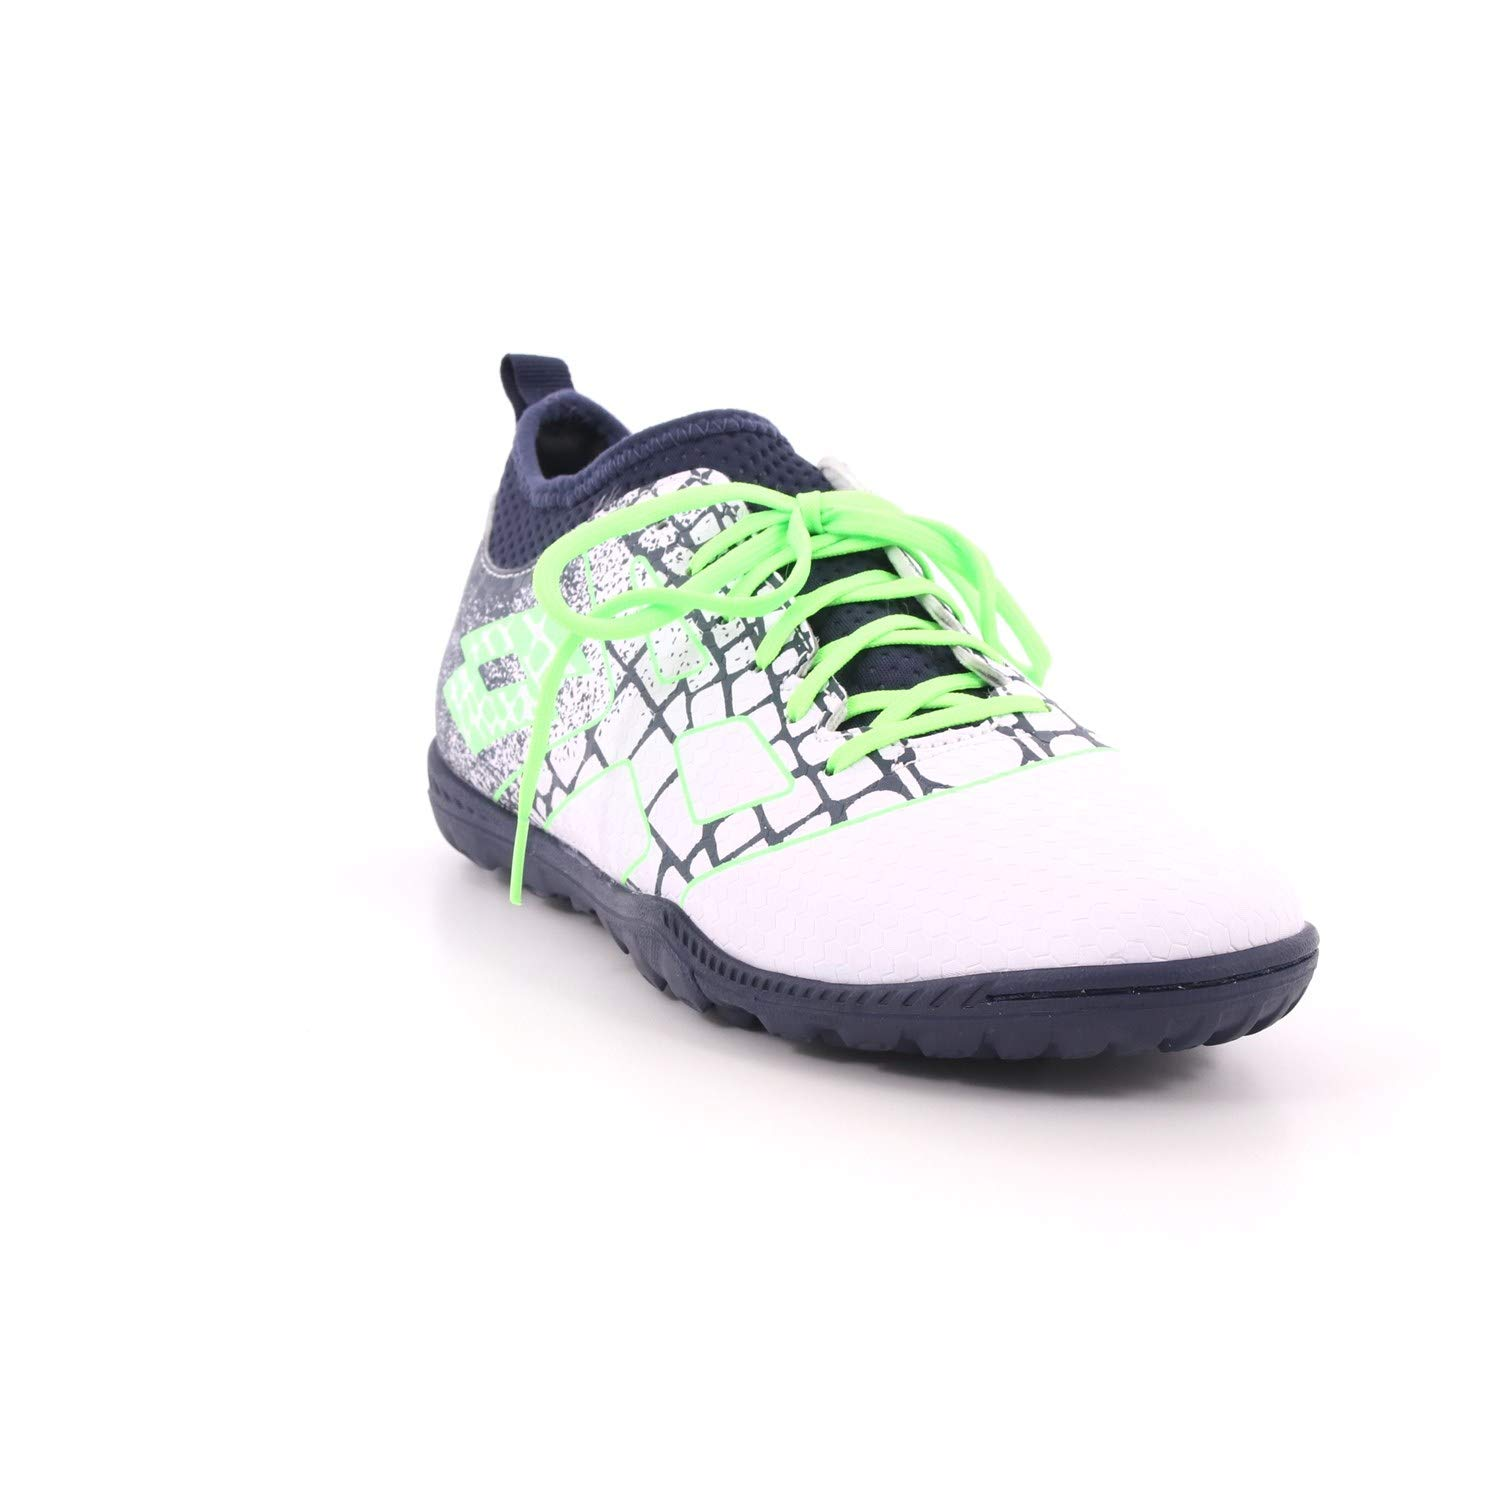 Lotto 211638 59H All White Spring Green Maestro 700 II TF Chaussures de Football